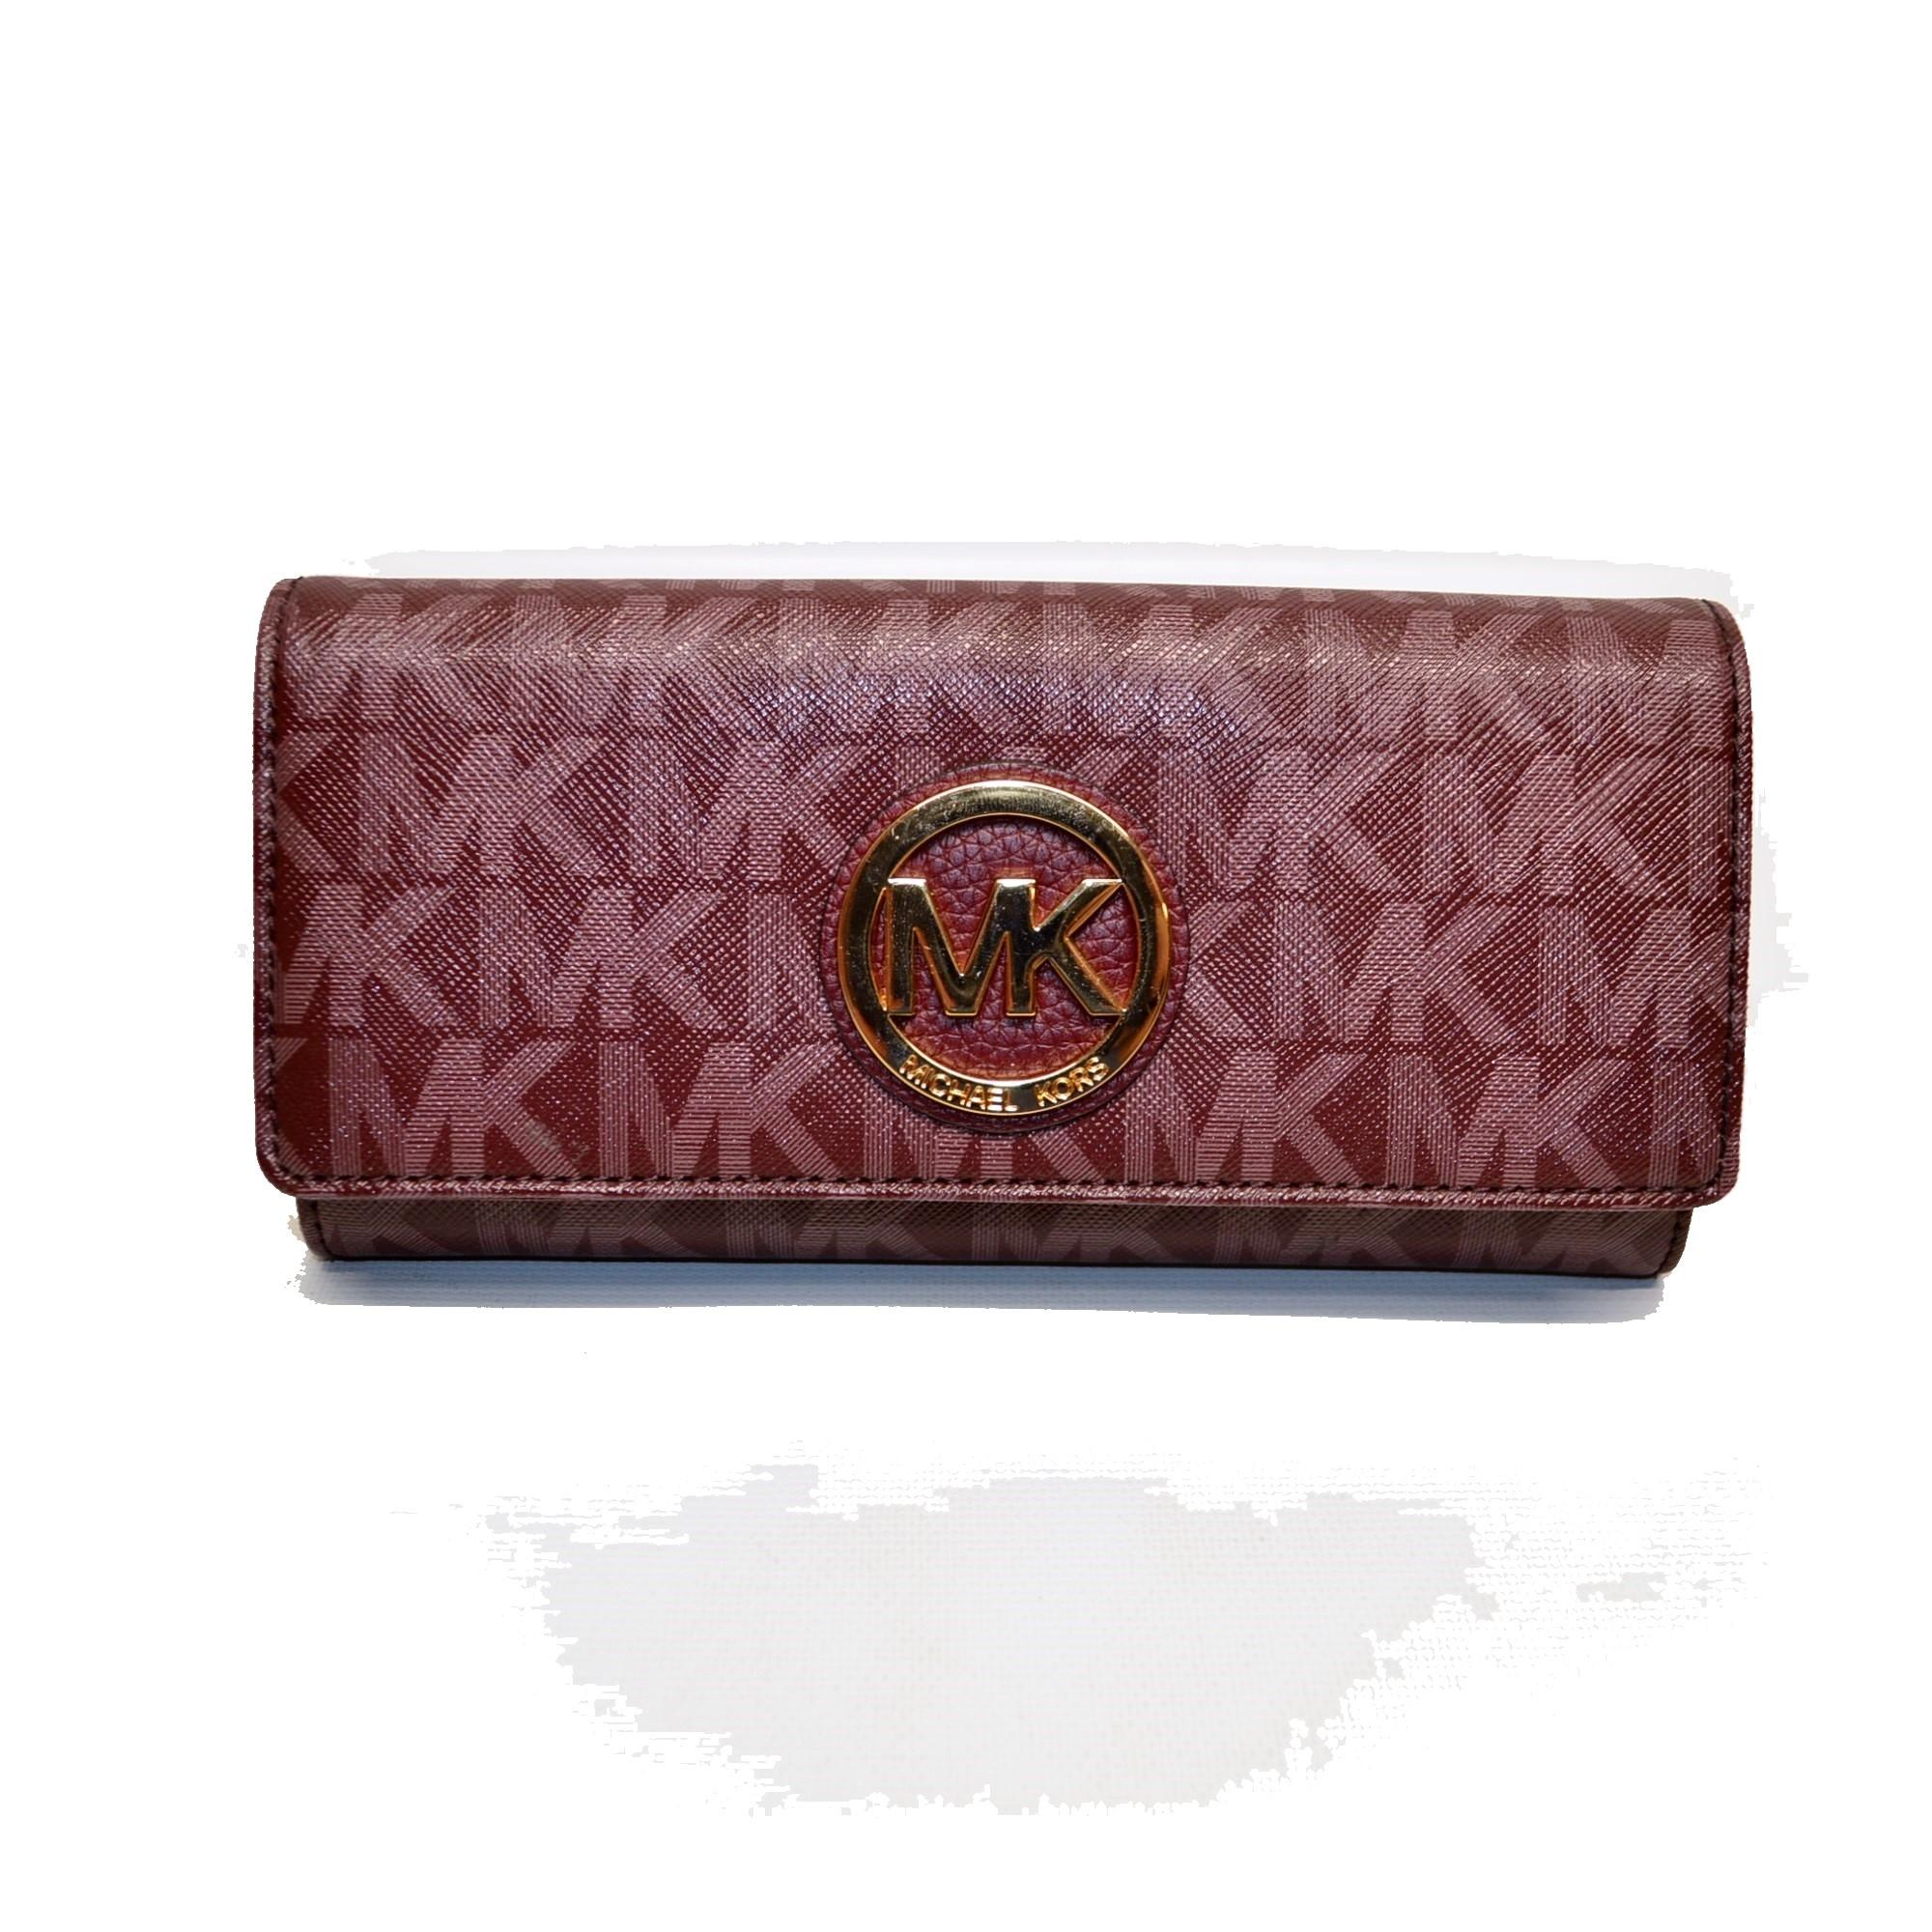 7db15b01d886e5 ... discount code for michael kors fulton flap continental signature wallet  clutch 07b76 ad52a